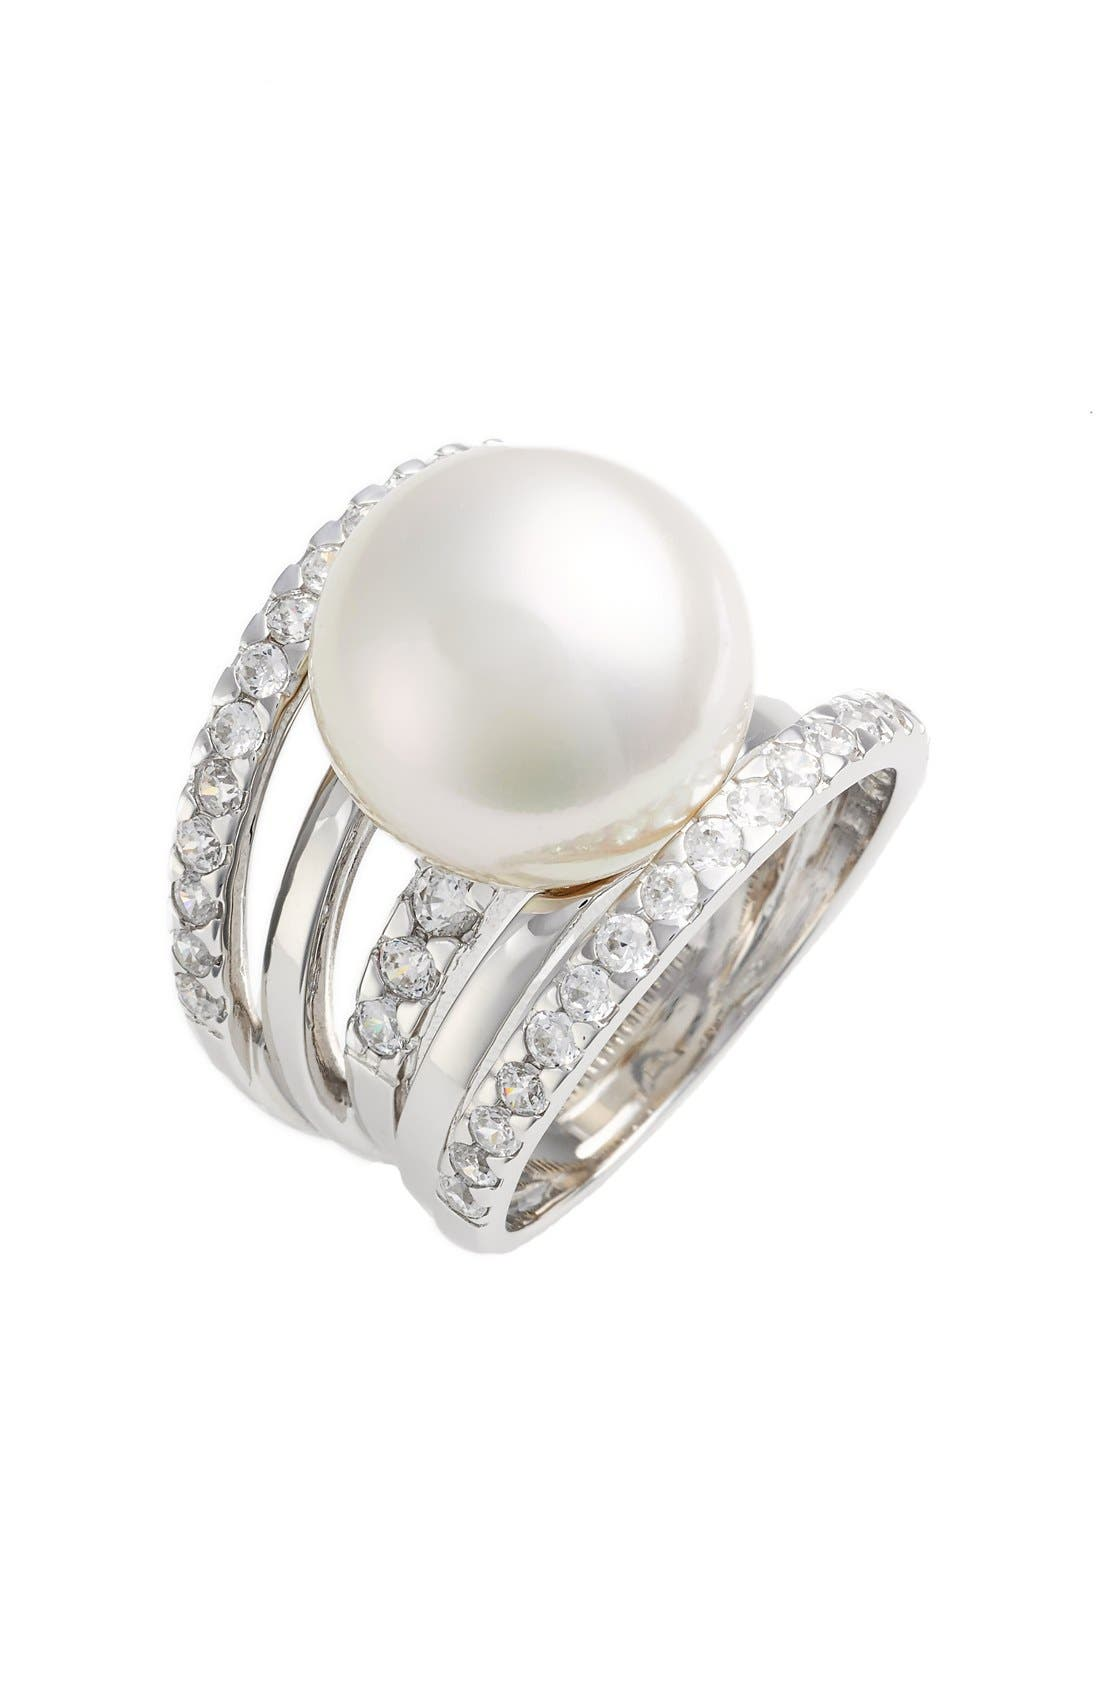 16mm Round Simulated Pearl Cubic Zirconia Ring,                         Main,                         color, White